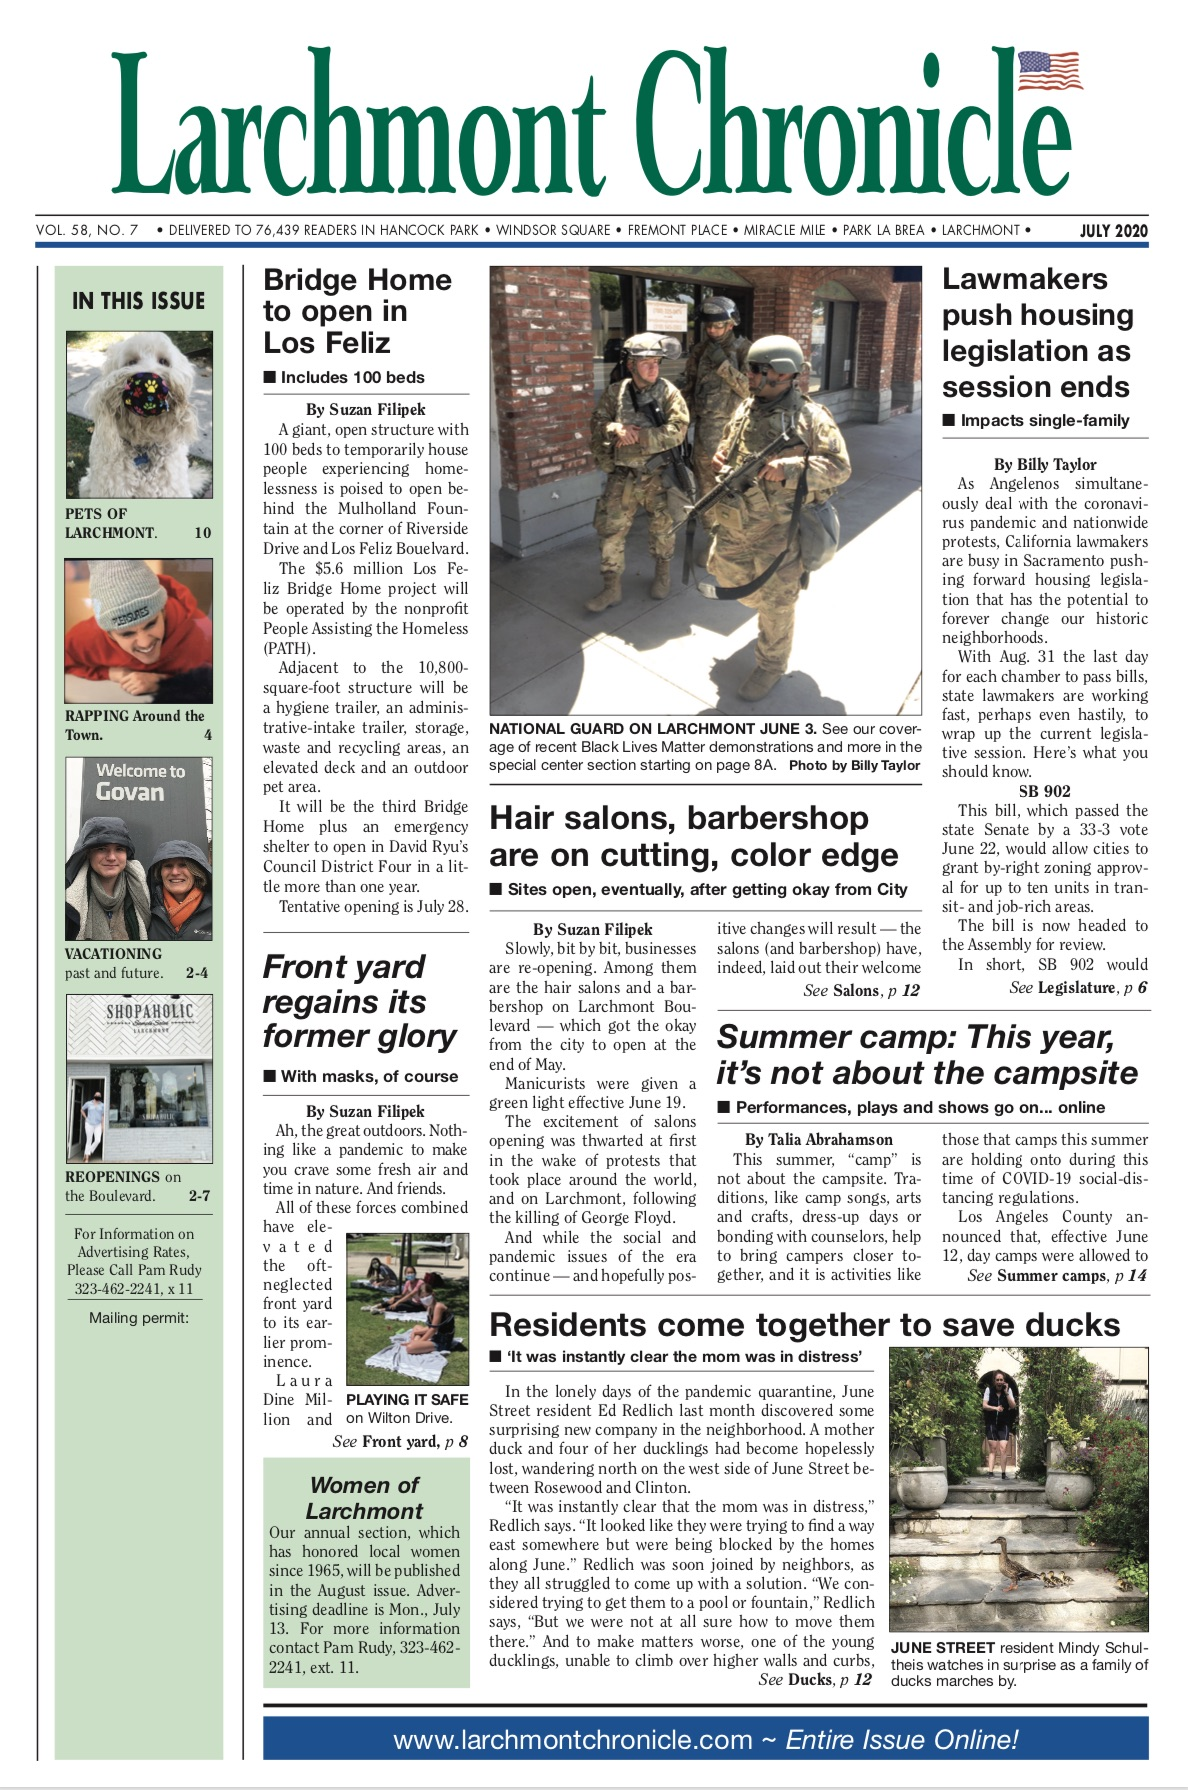 Larchmont Chronicle July 2020 full issue